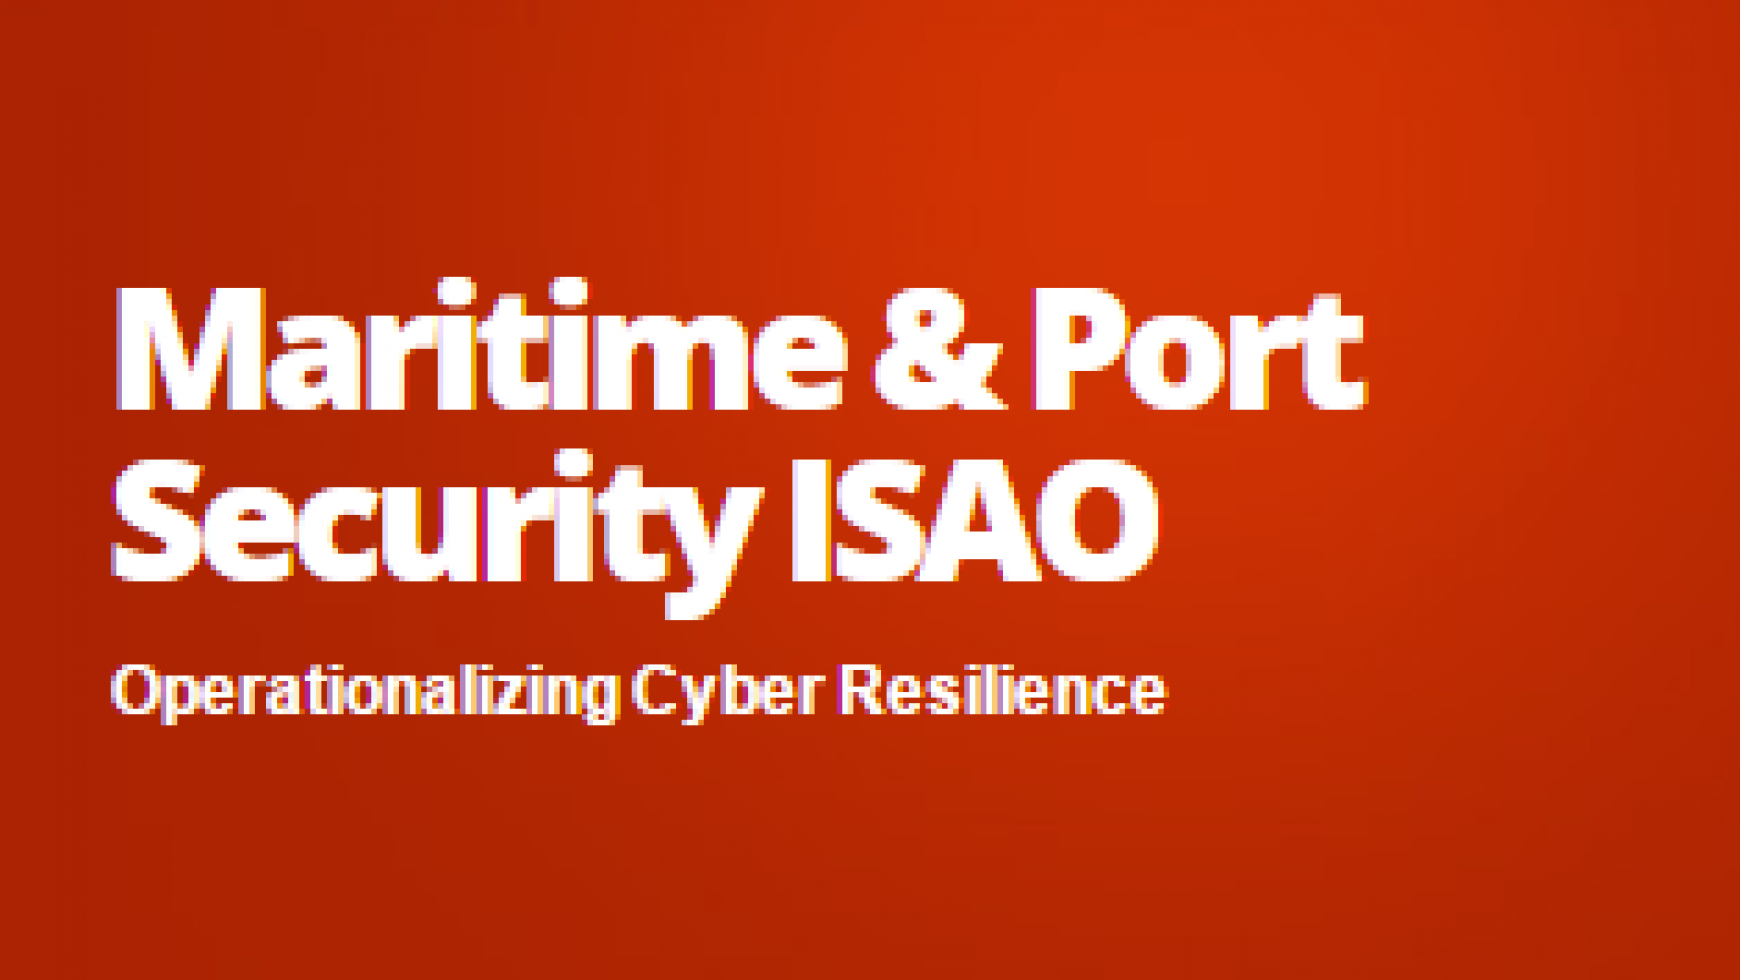 Maritime and Port Security ISAO